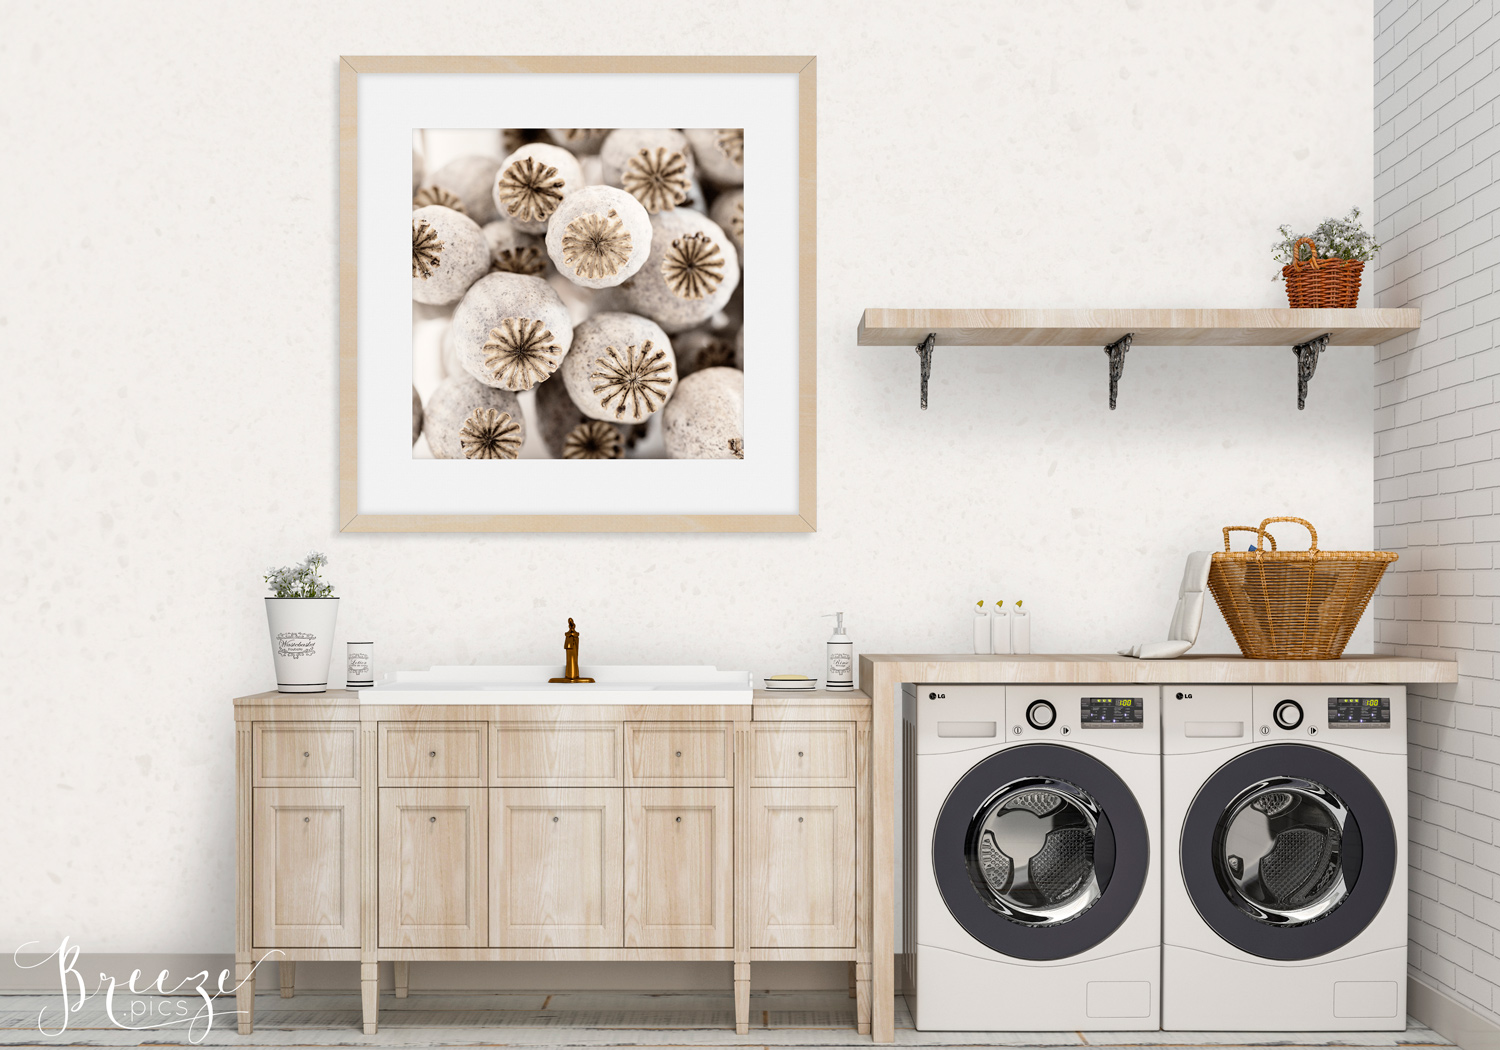 A guide to art and photography for the laundry